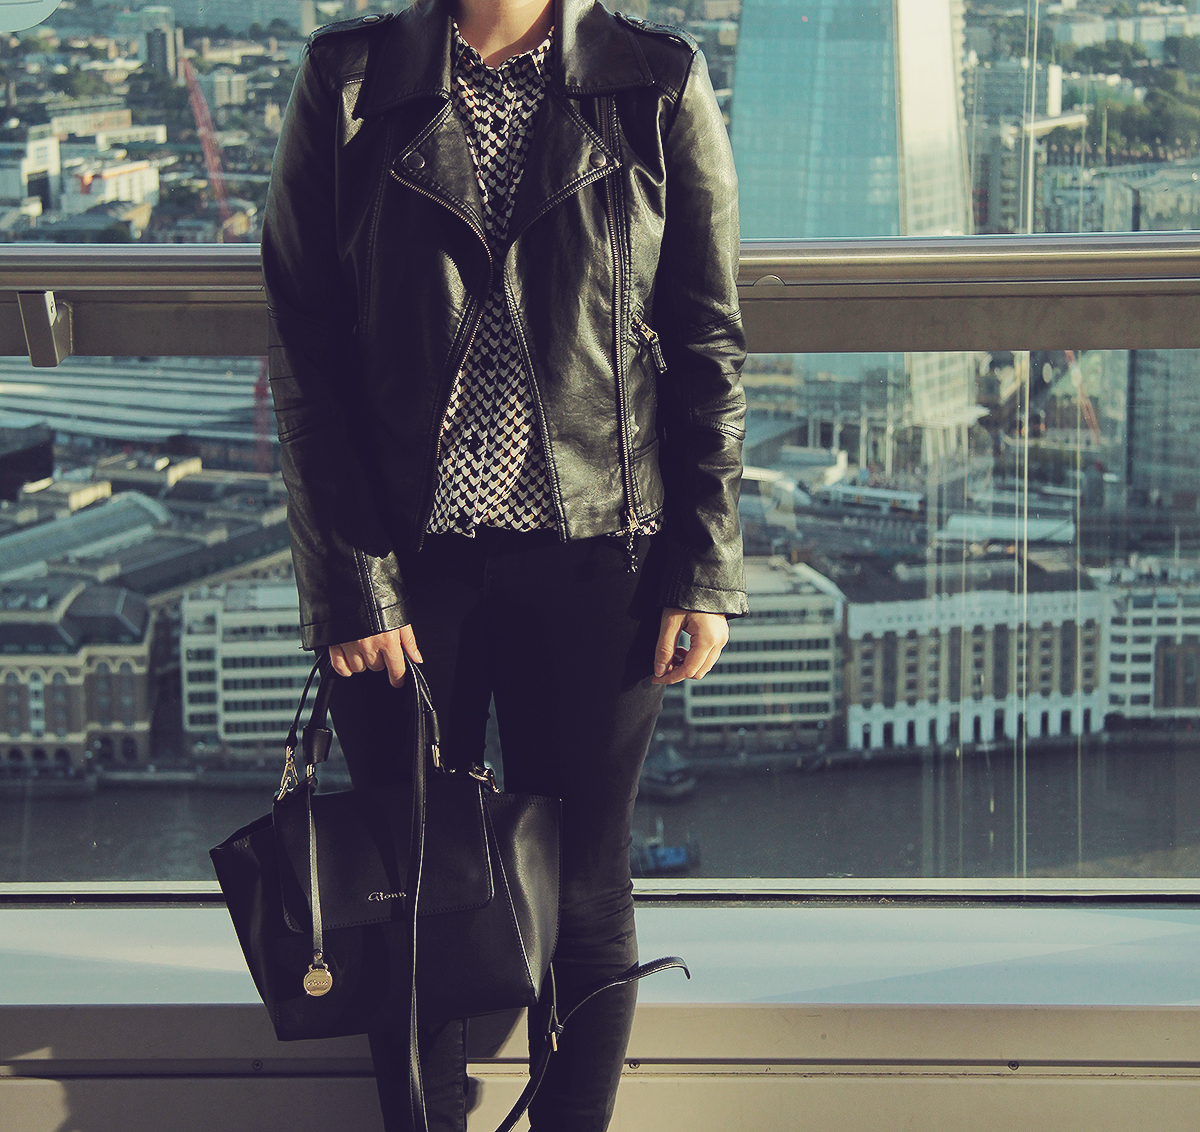 london-faux-leather-jacket-and-bag